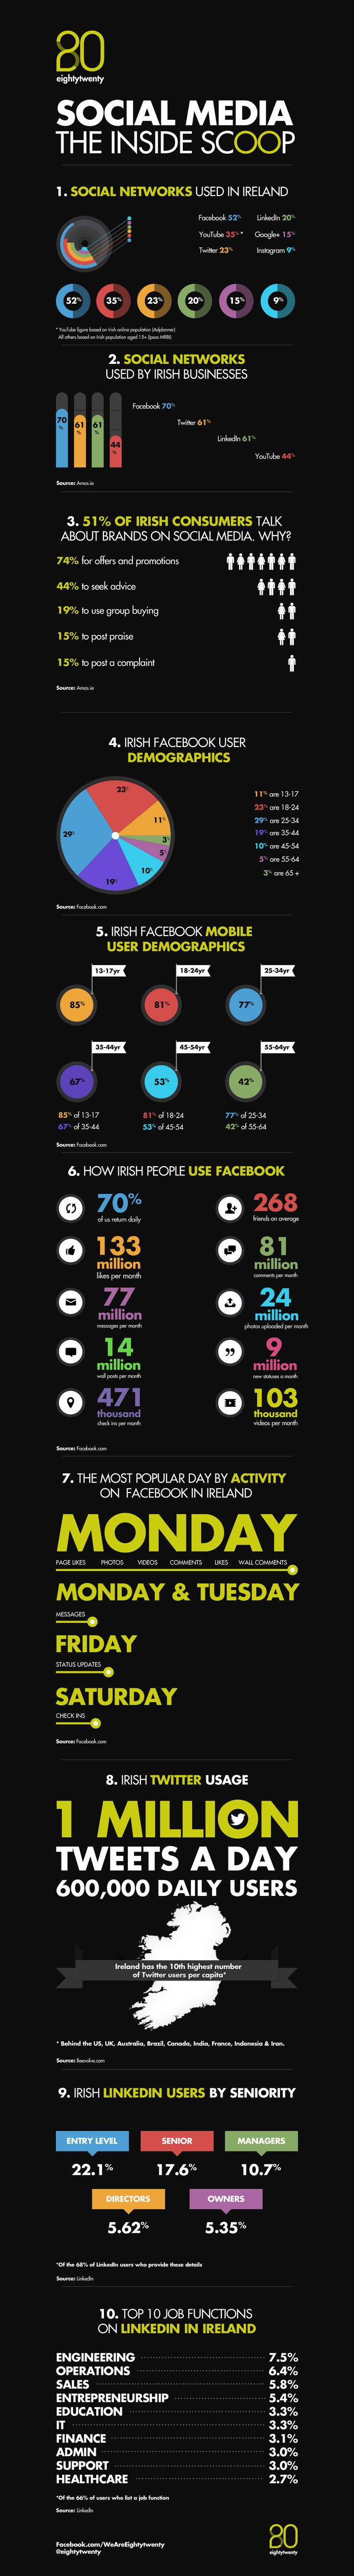 Stats on Digital usage in Ireland